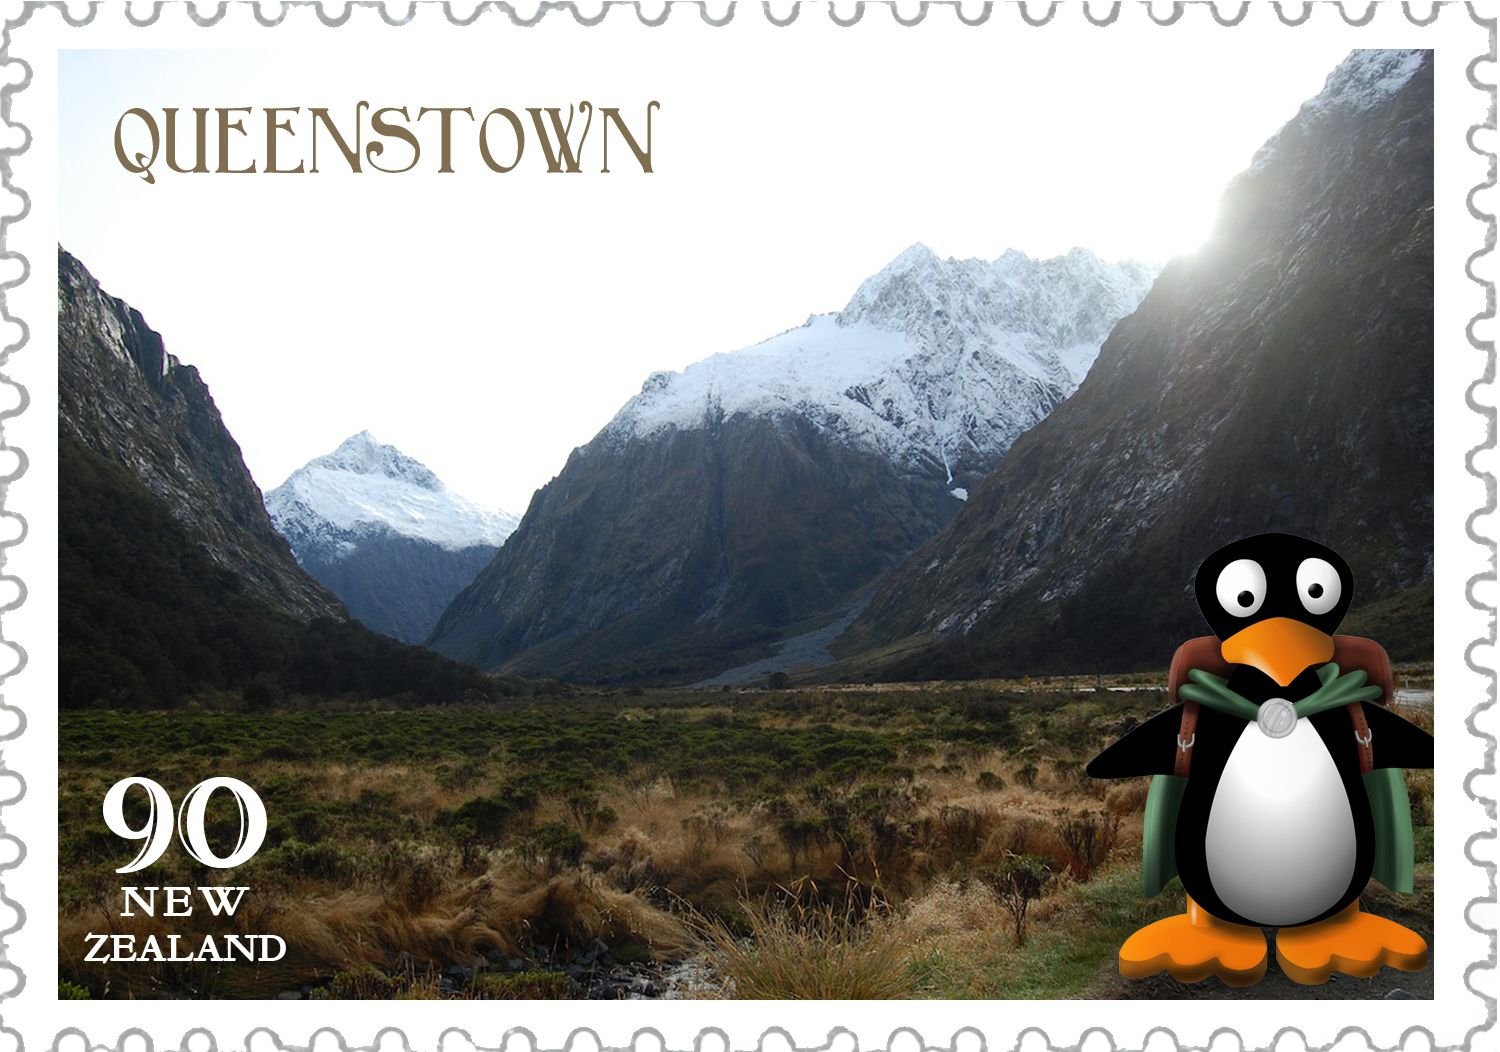 90 ST Math progress and JiJi is all the way in Queenstown